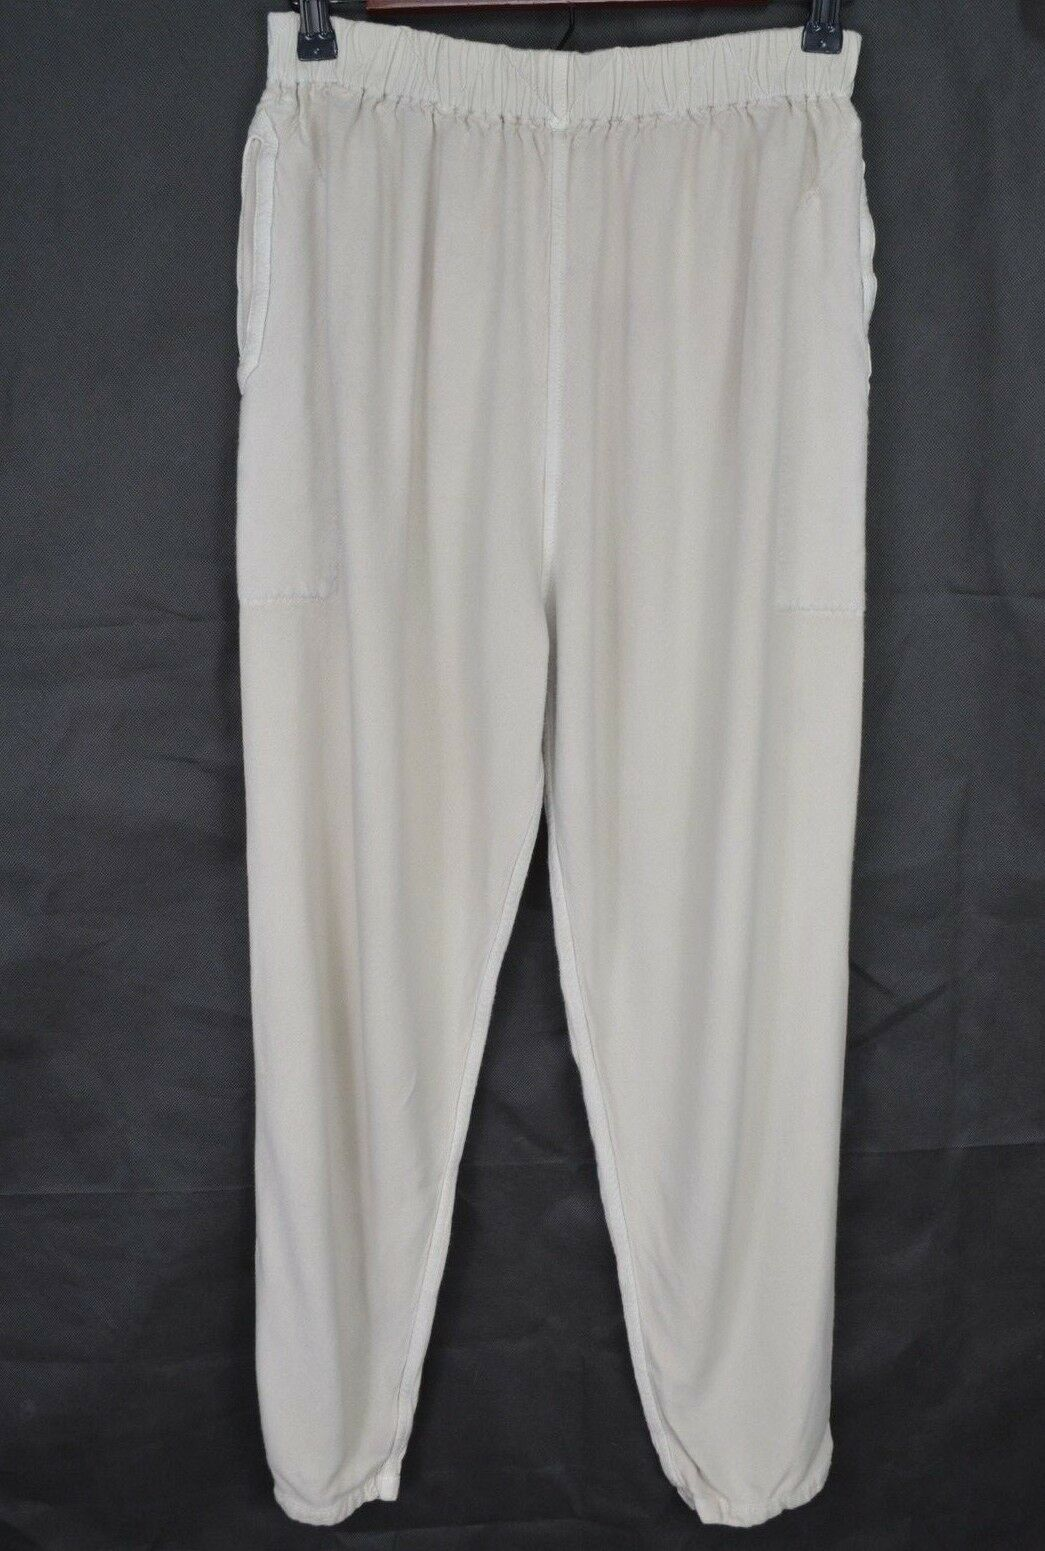 Dairi Fashion Mgoldcco Pants Size Small Pull On Stretch Elastic Cotton Lagenlook